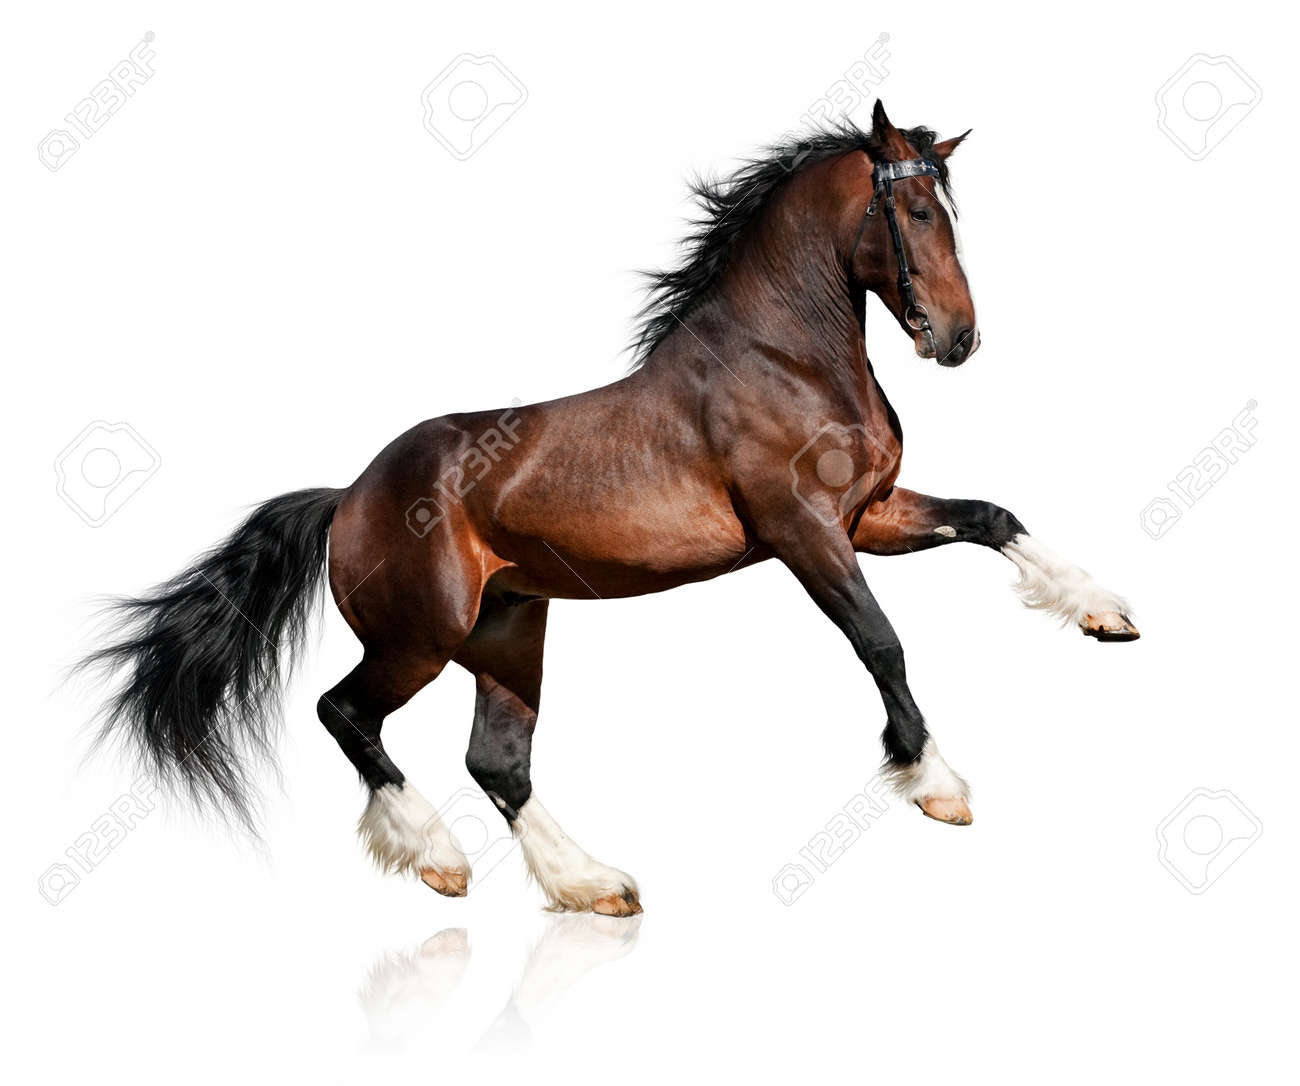 White Horse Stock Photos. Royalty Free White Horse Images